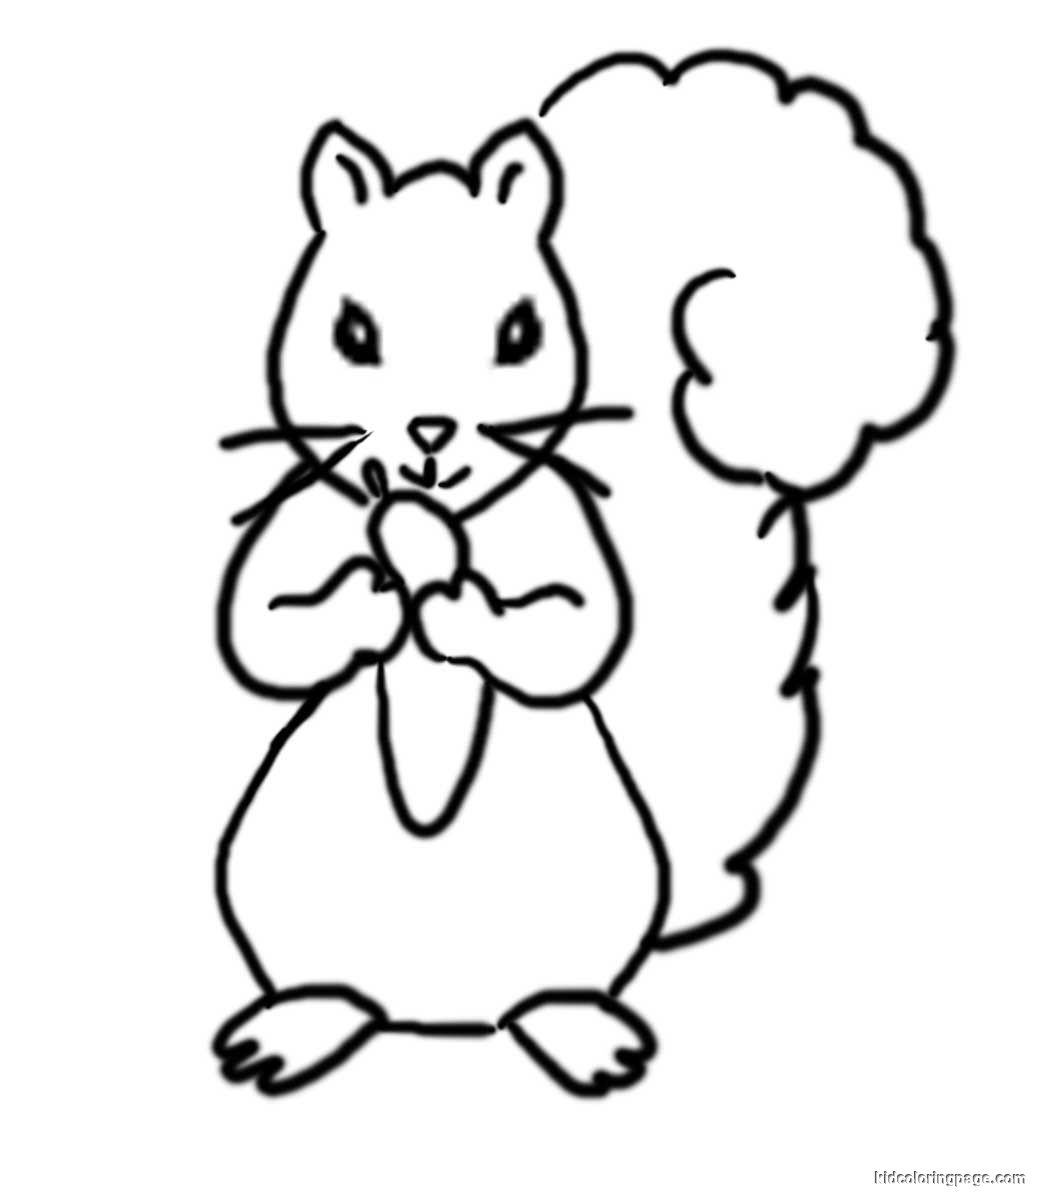 Squirrel Coloring Page For Adults